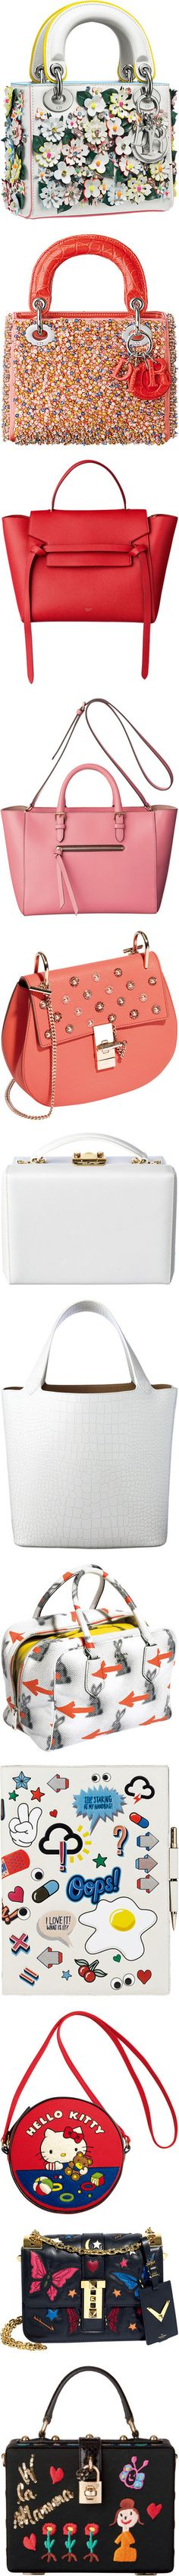 Vogue Japan bags and clutches! by blueladybird on Polyvore featuring women's fashion, bags, handbags, sac, white handbags, white purse, white bags, dior, celine and red purse